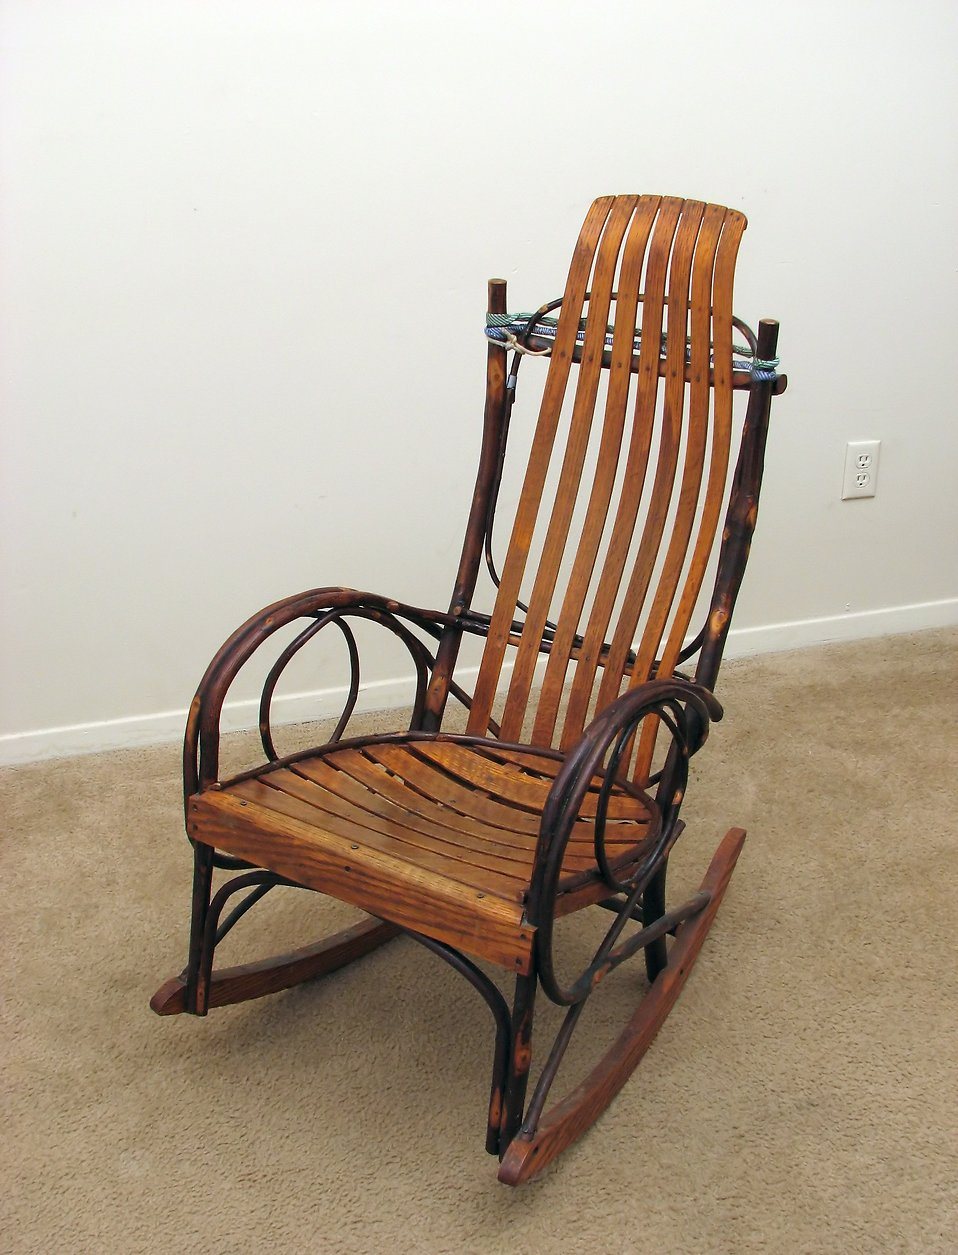 An old wooden rocking chair : Free Stock Photo